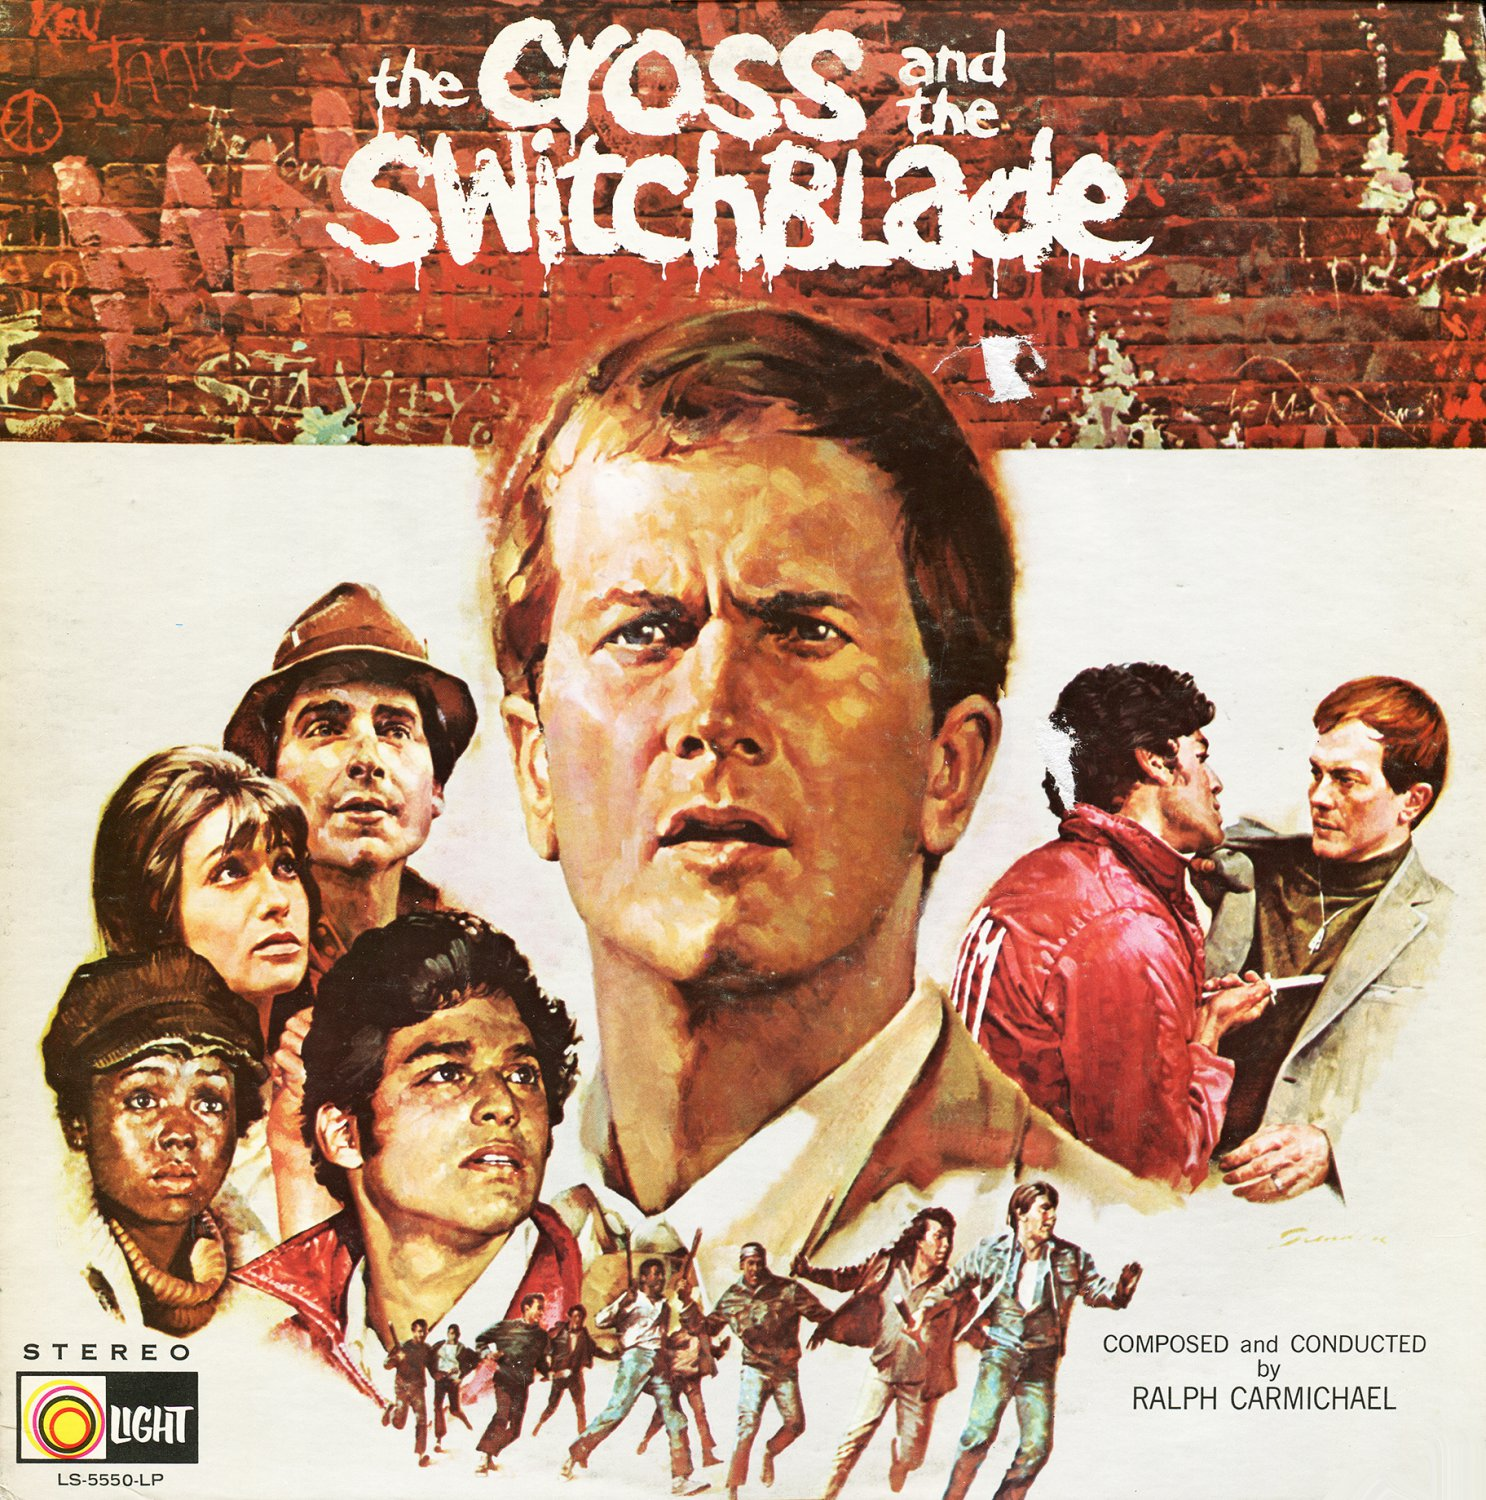 The Cross And The Switchblade - Original Soundtrack, Ralph Carmichael OST LP/CD